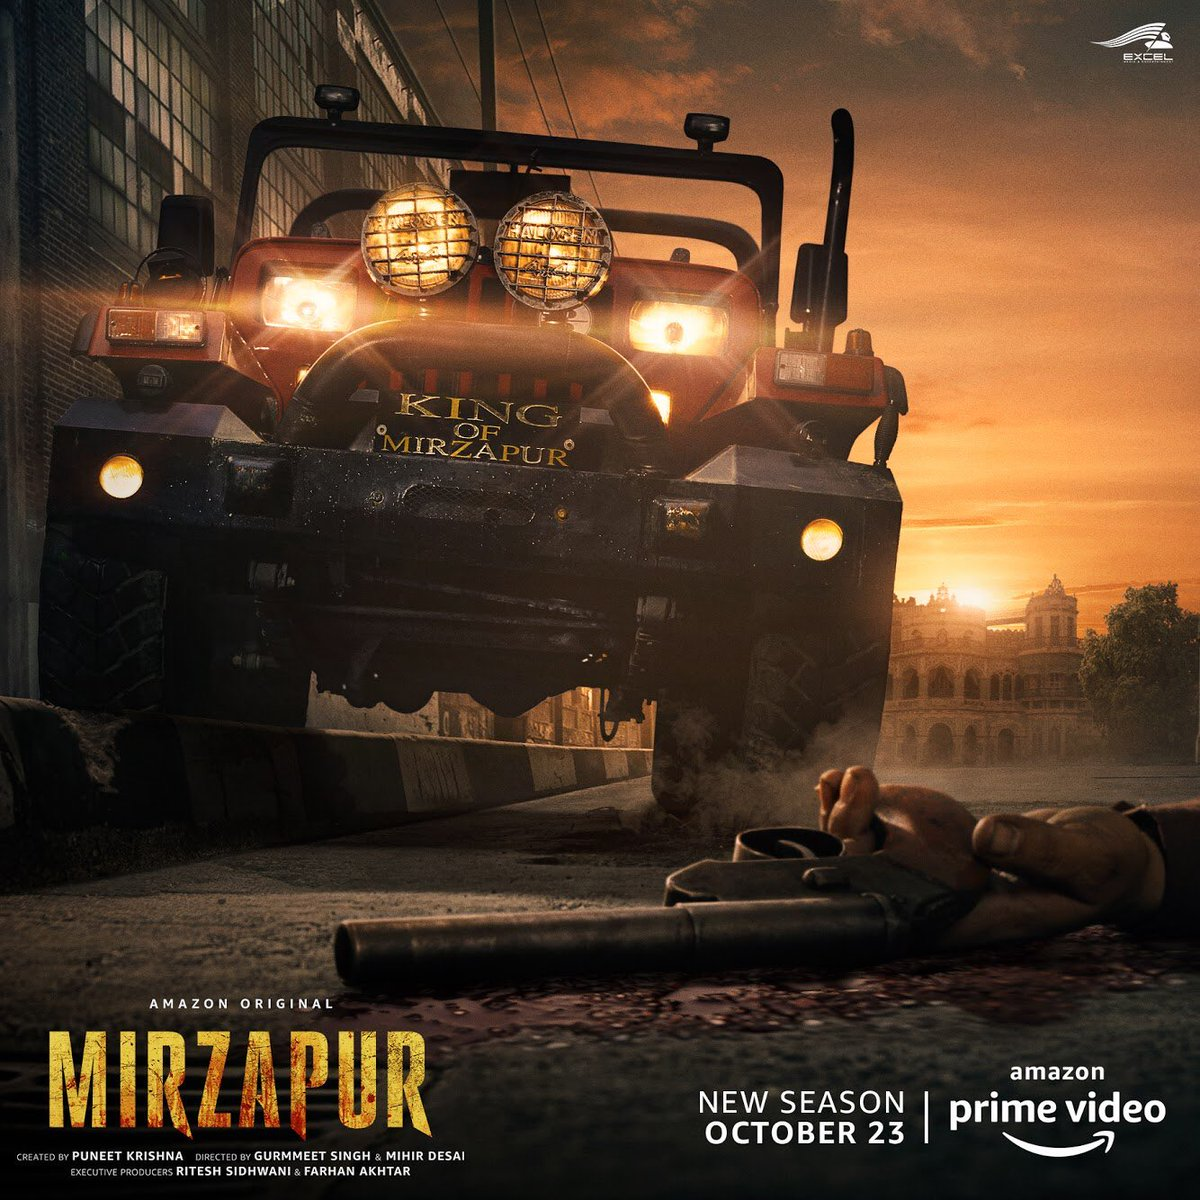 Here is the brand new poster for #Mirzapur2 🔥 https://t.co/mUlW1U7BbS